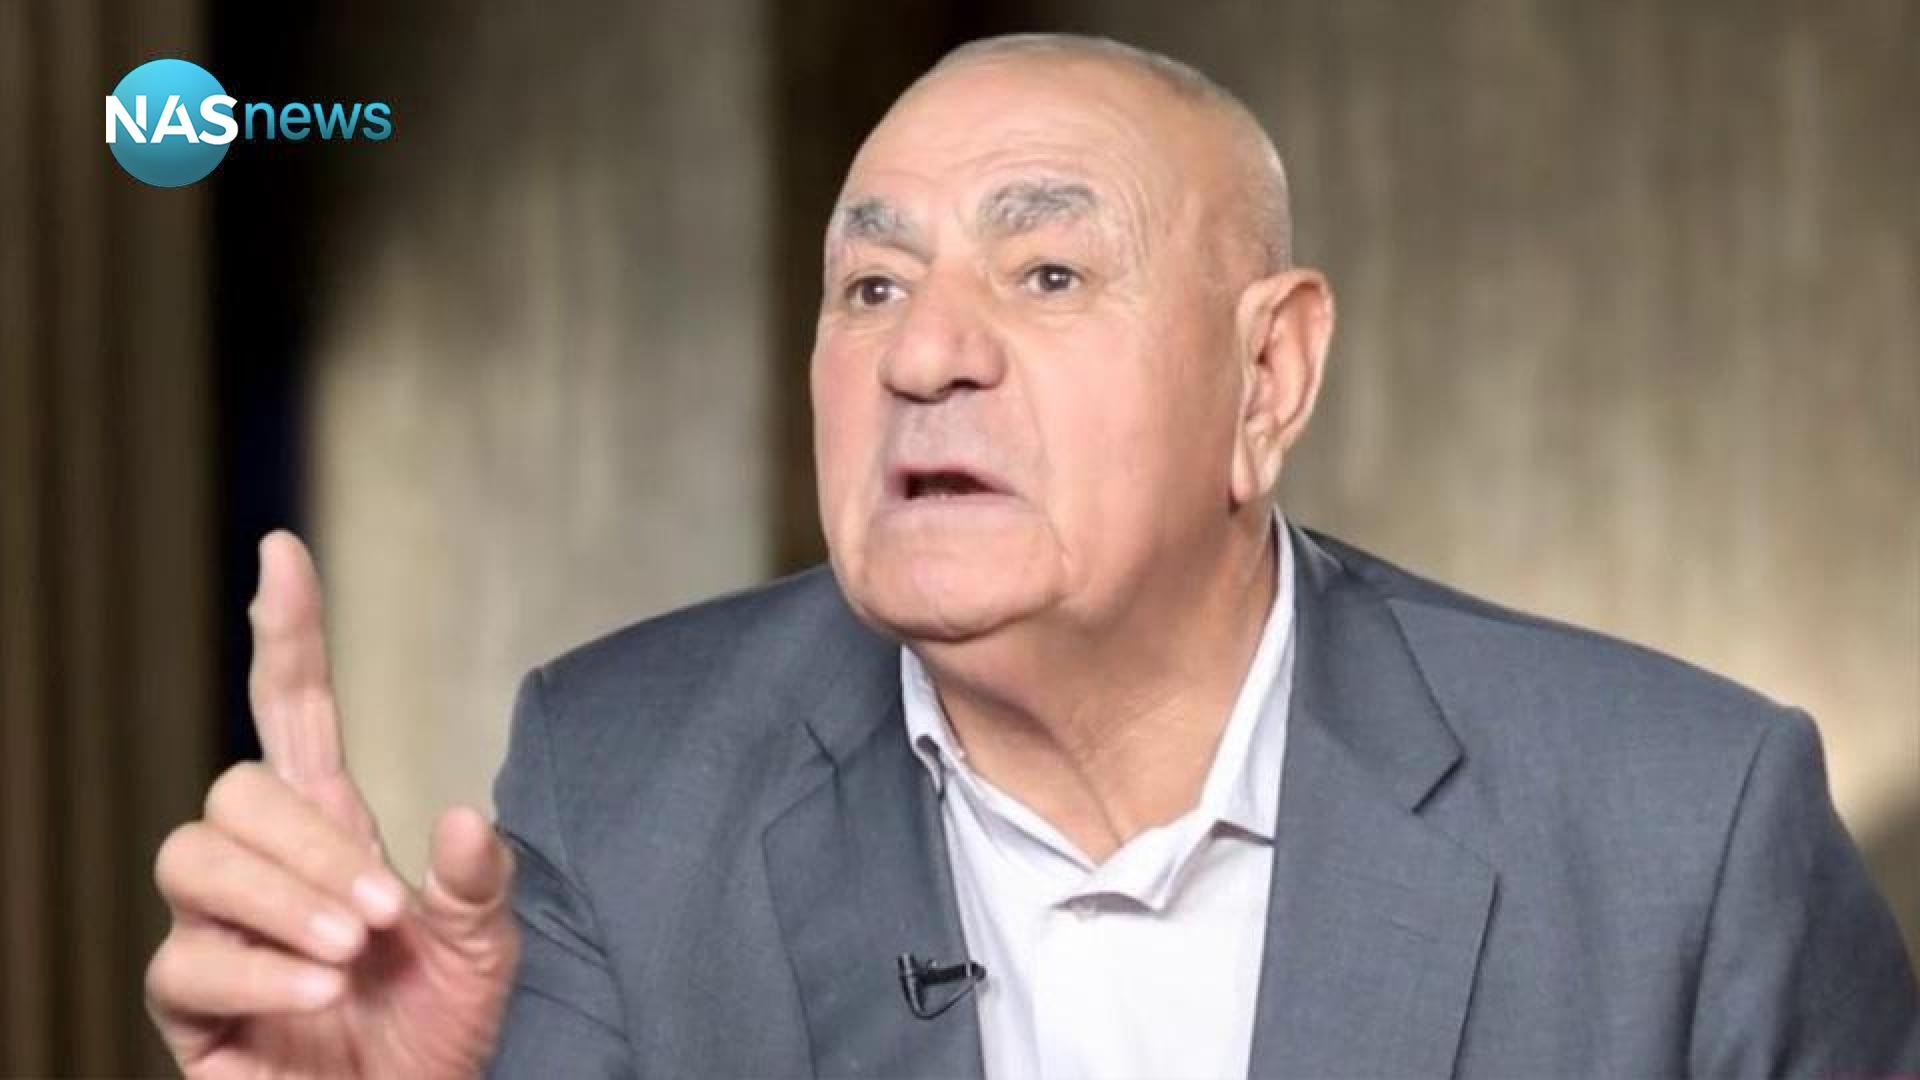 Tariq Harb clarifies about the largest bloc - alliances in front of the Sadrist movement are useless